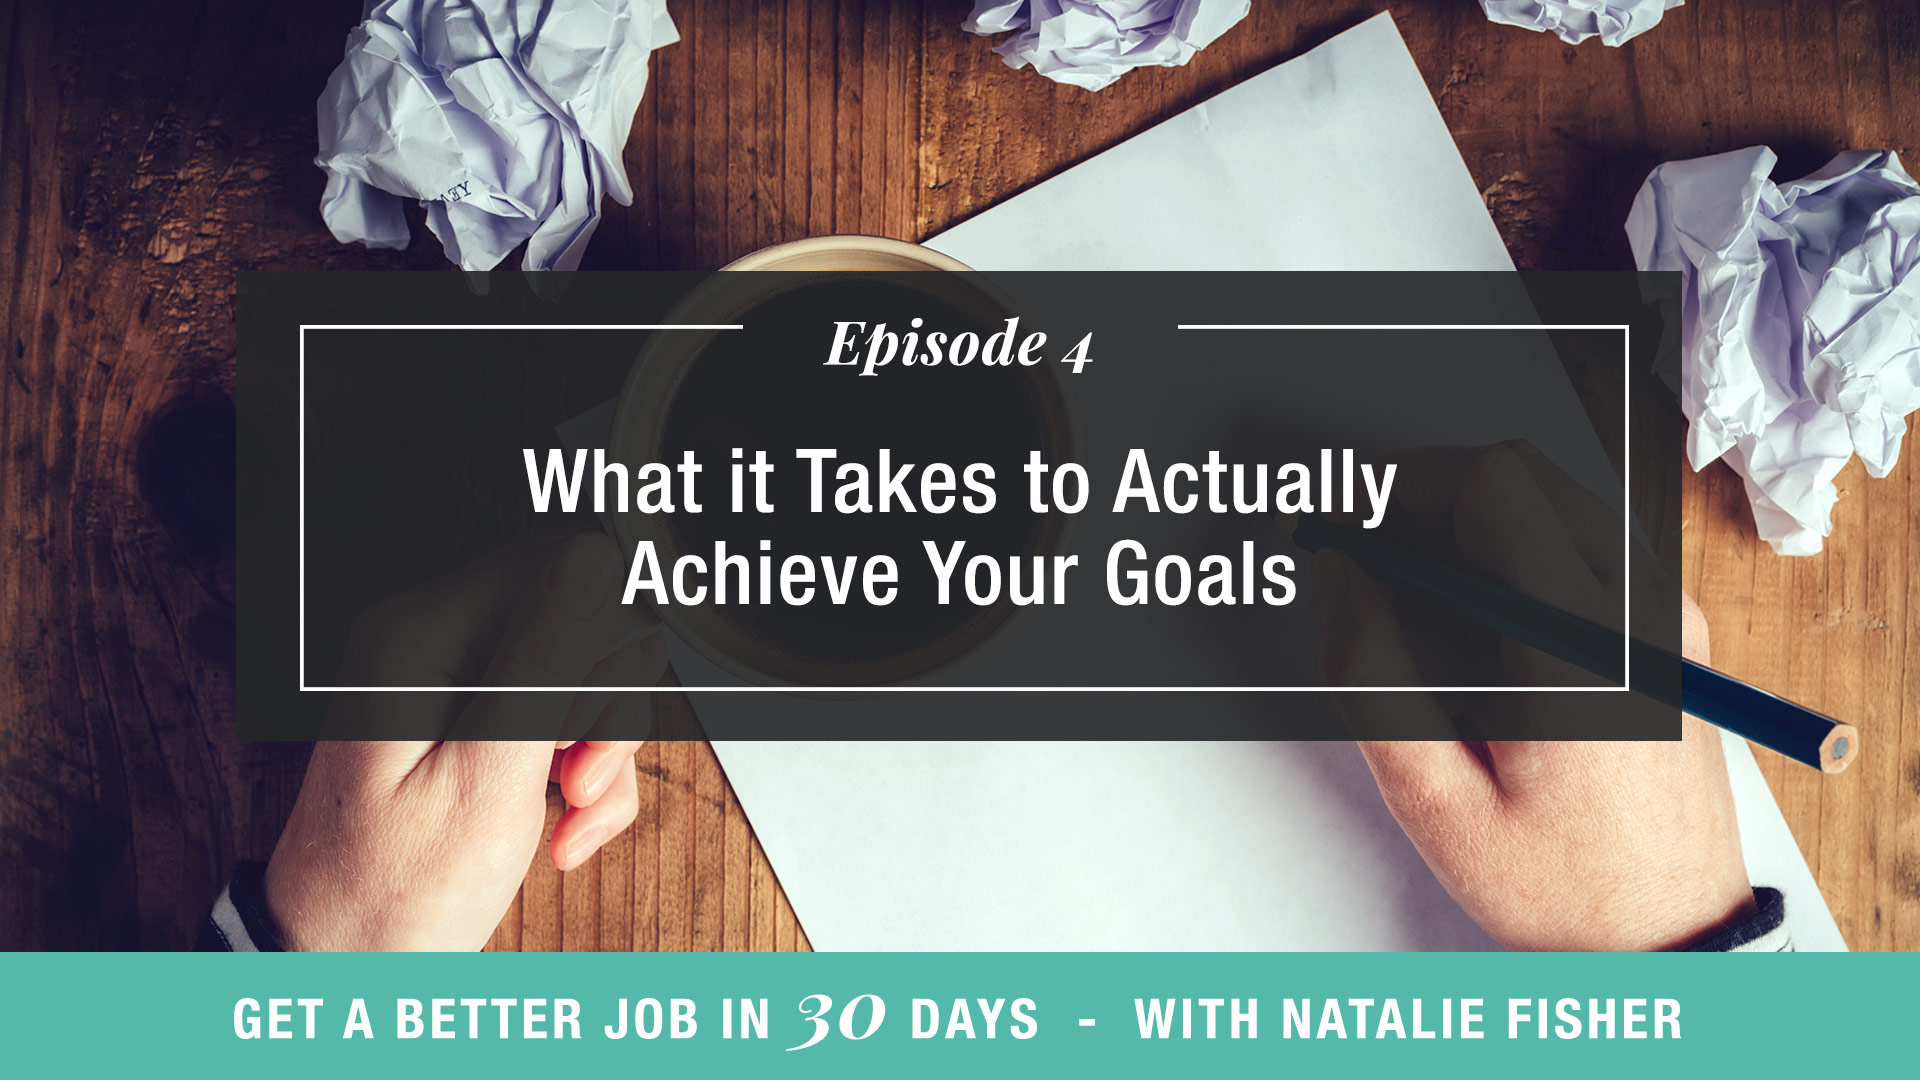 What it Takes to Actually Achieve Your Goals